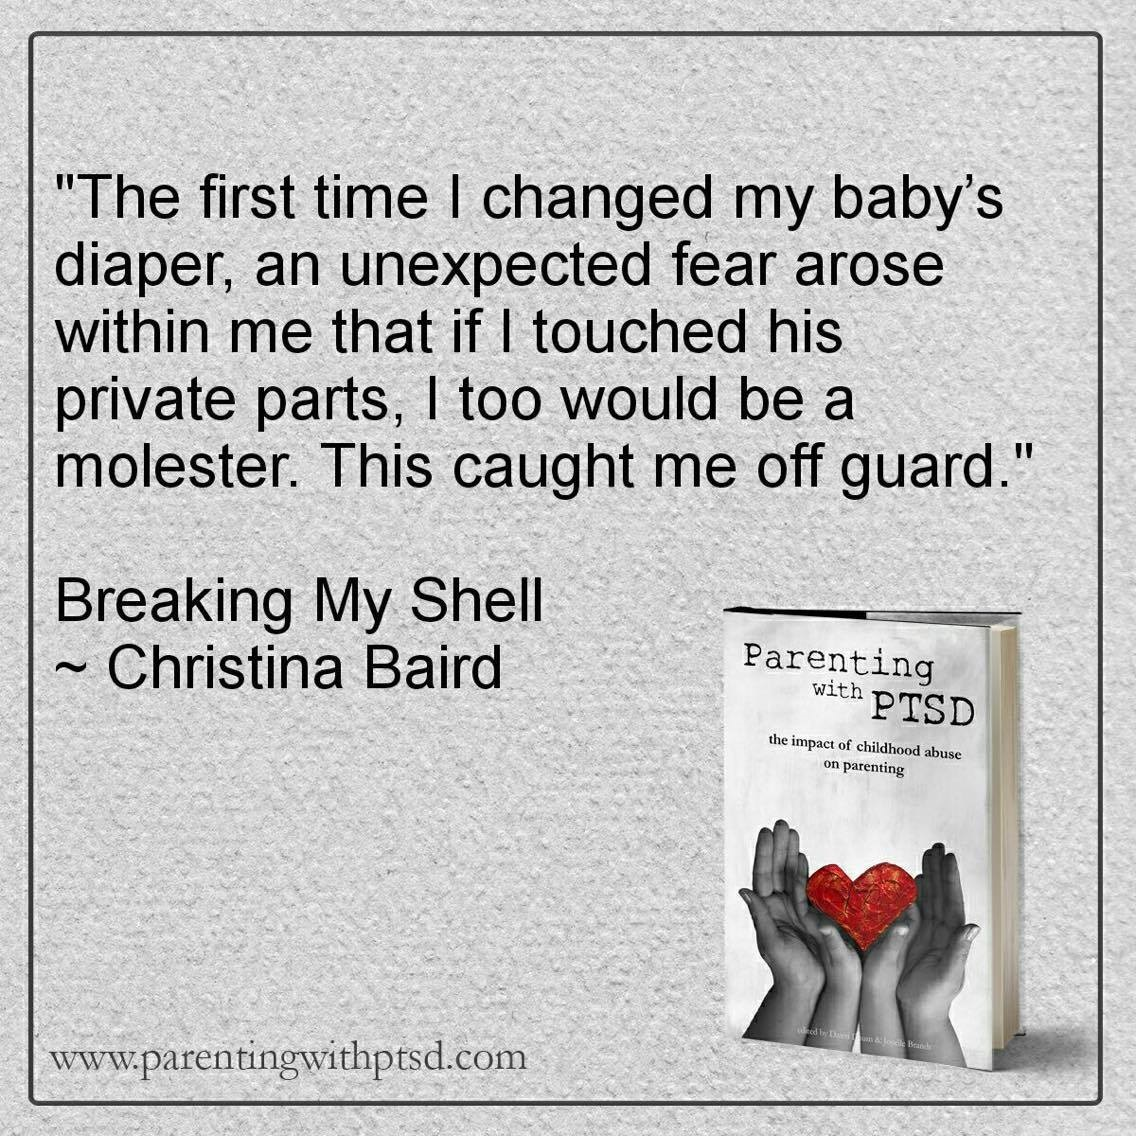 - Becoming a parent can give rise to unexpected feelings and thoughts for trauma survivors.